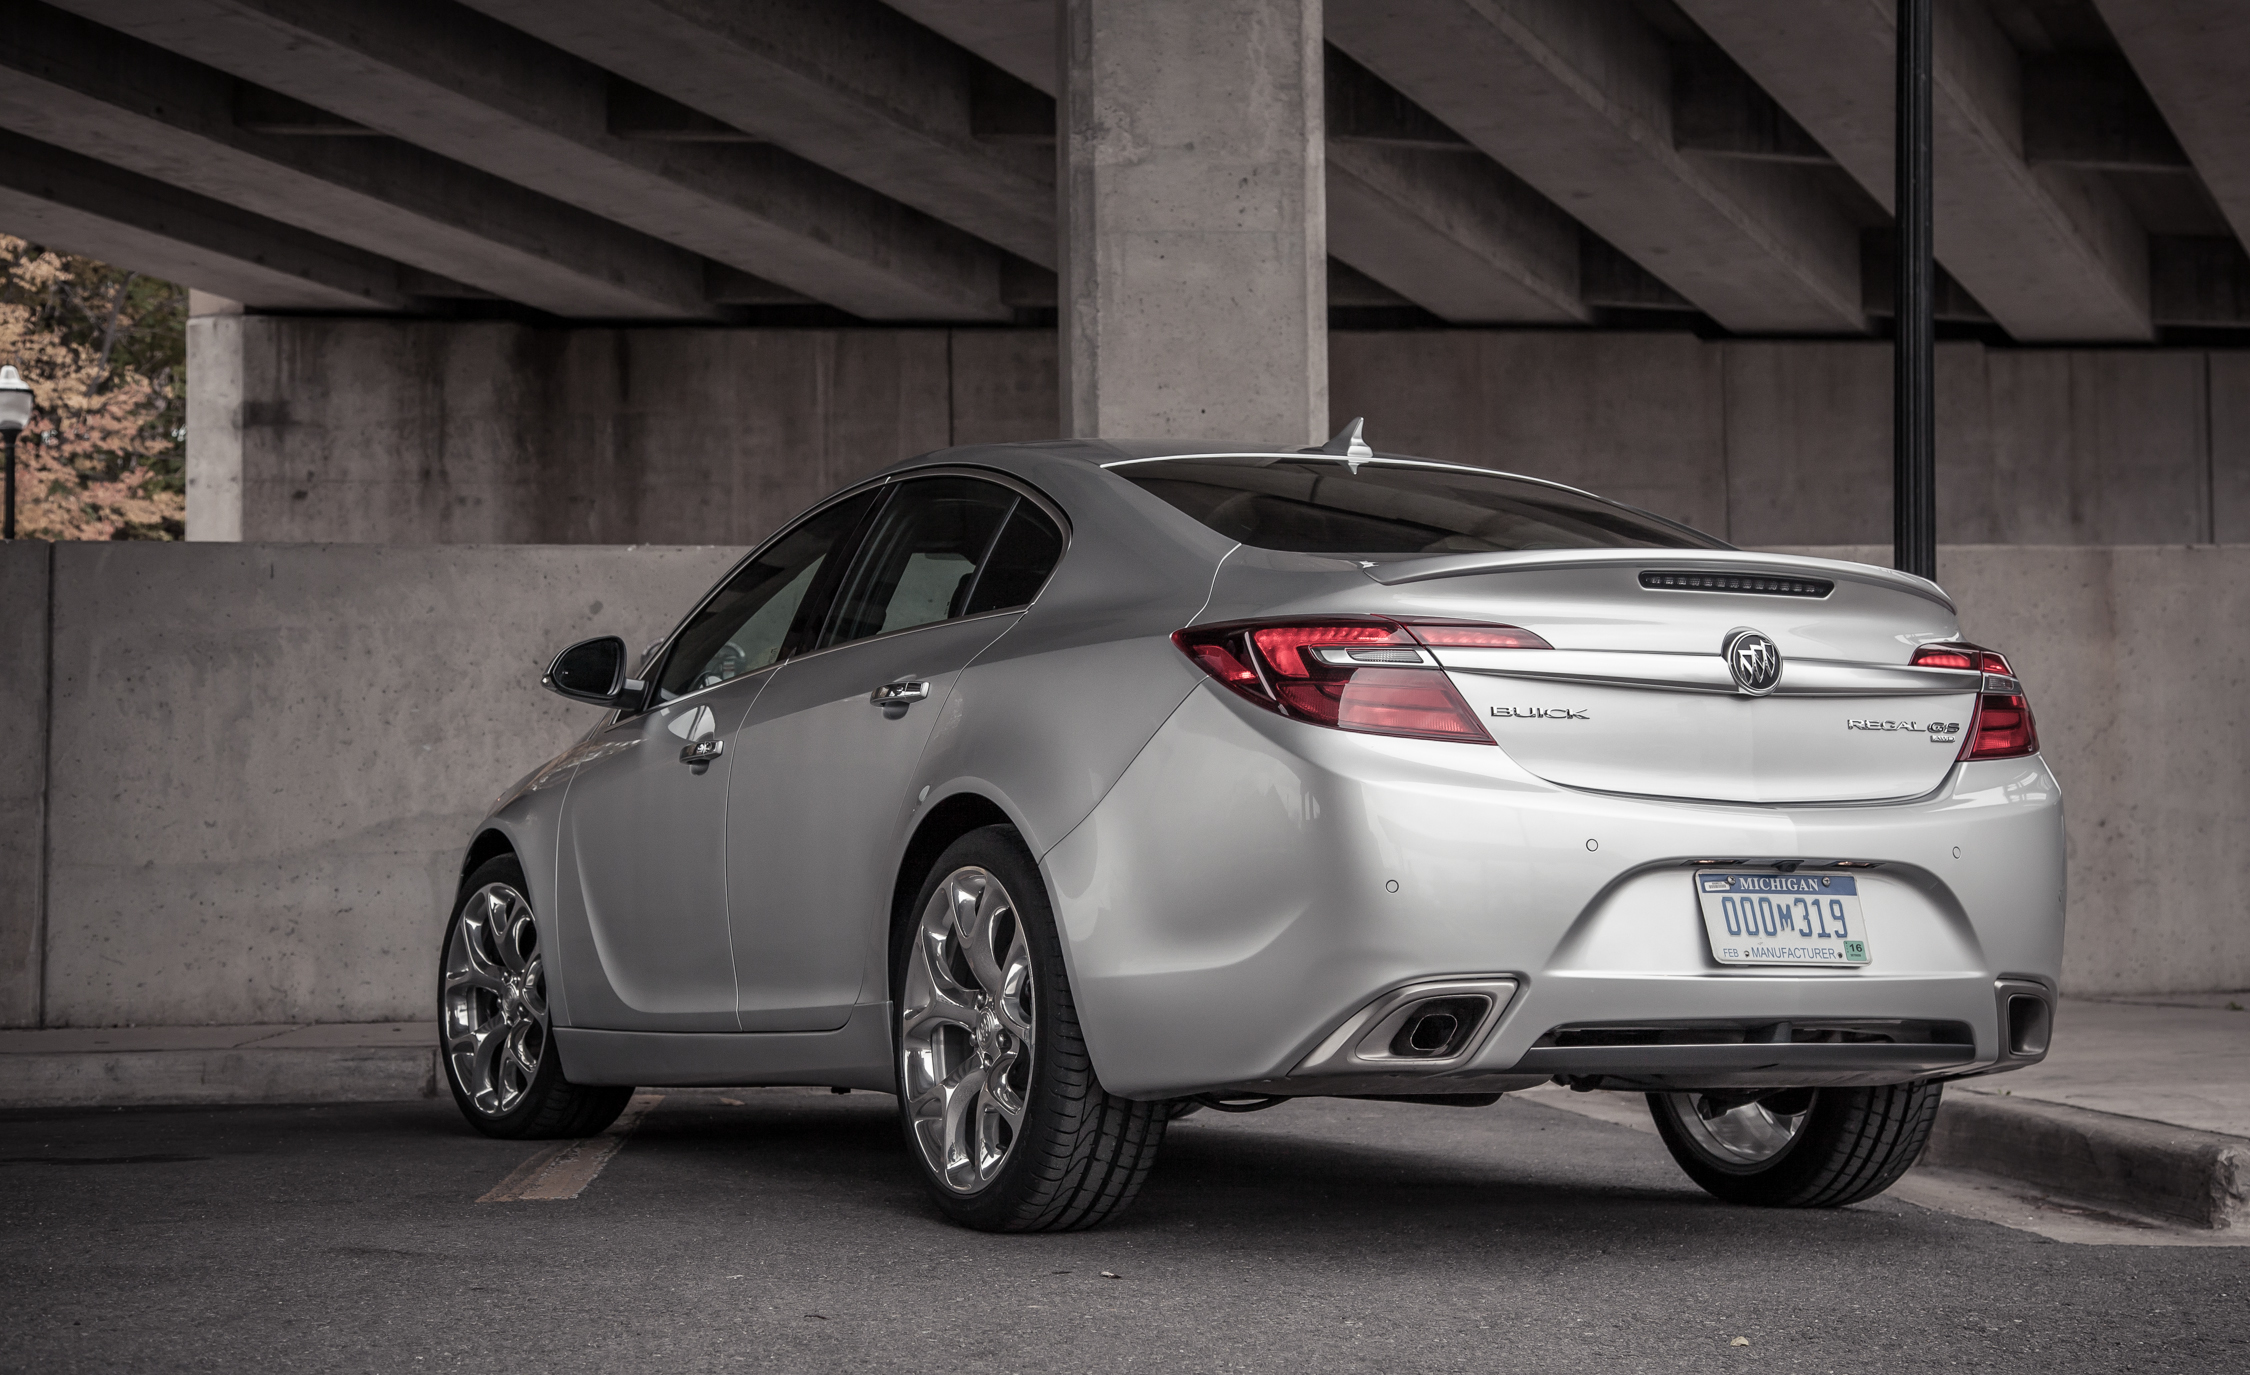 2014 Buick Regal GS (Photo 4 of 30)